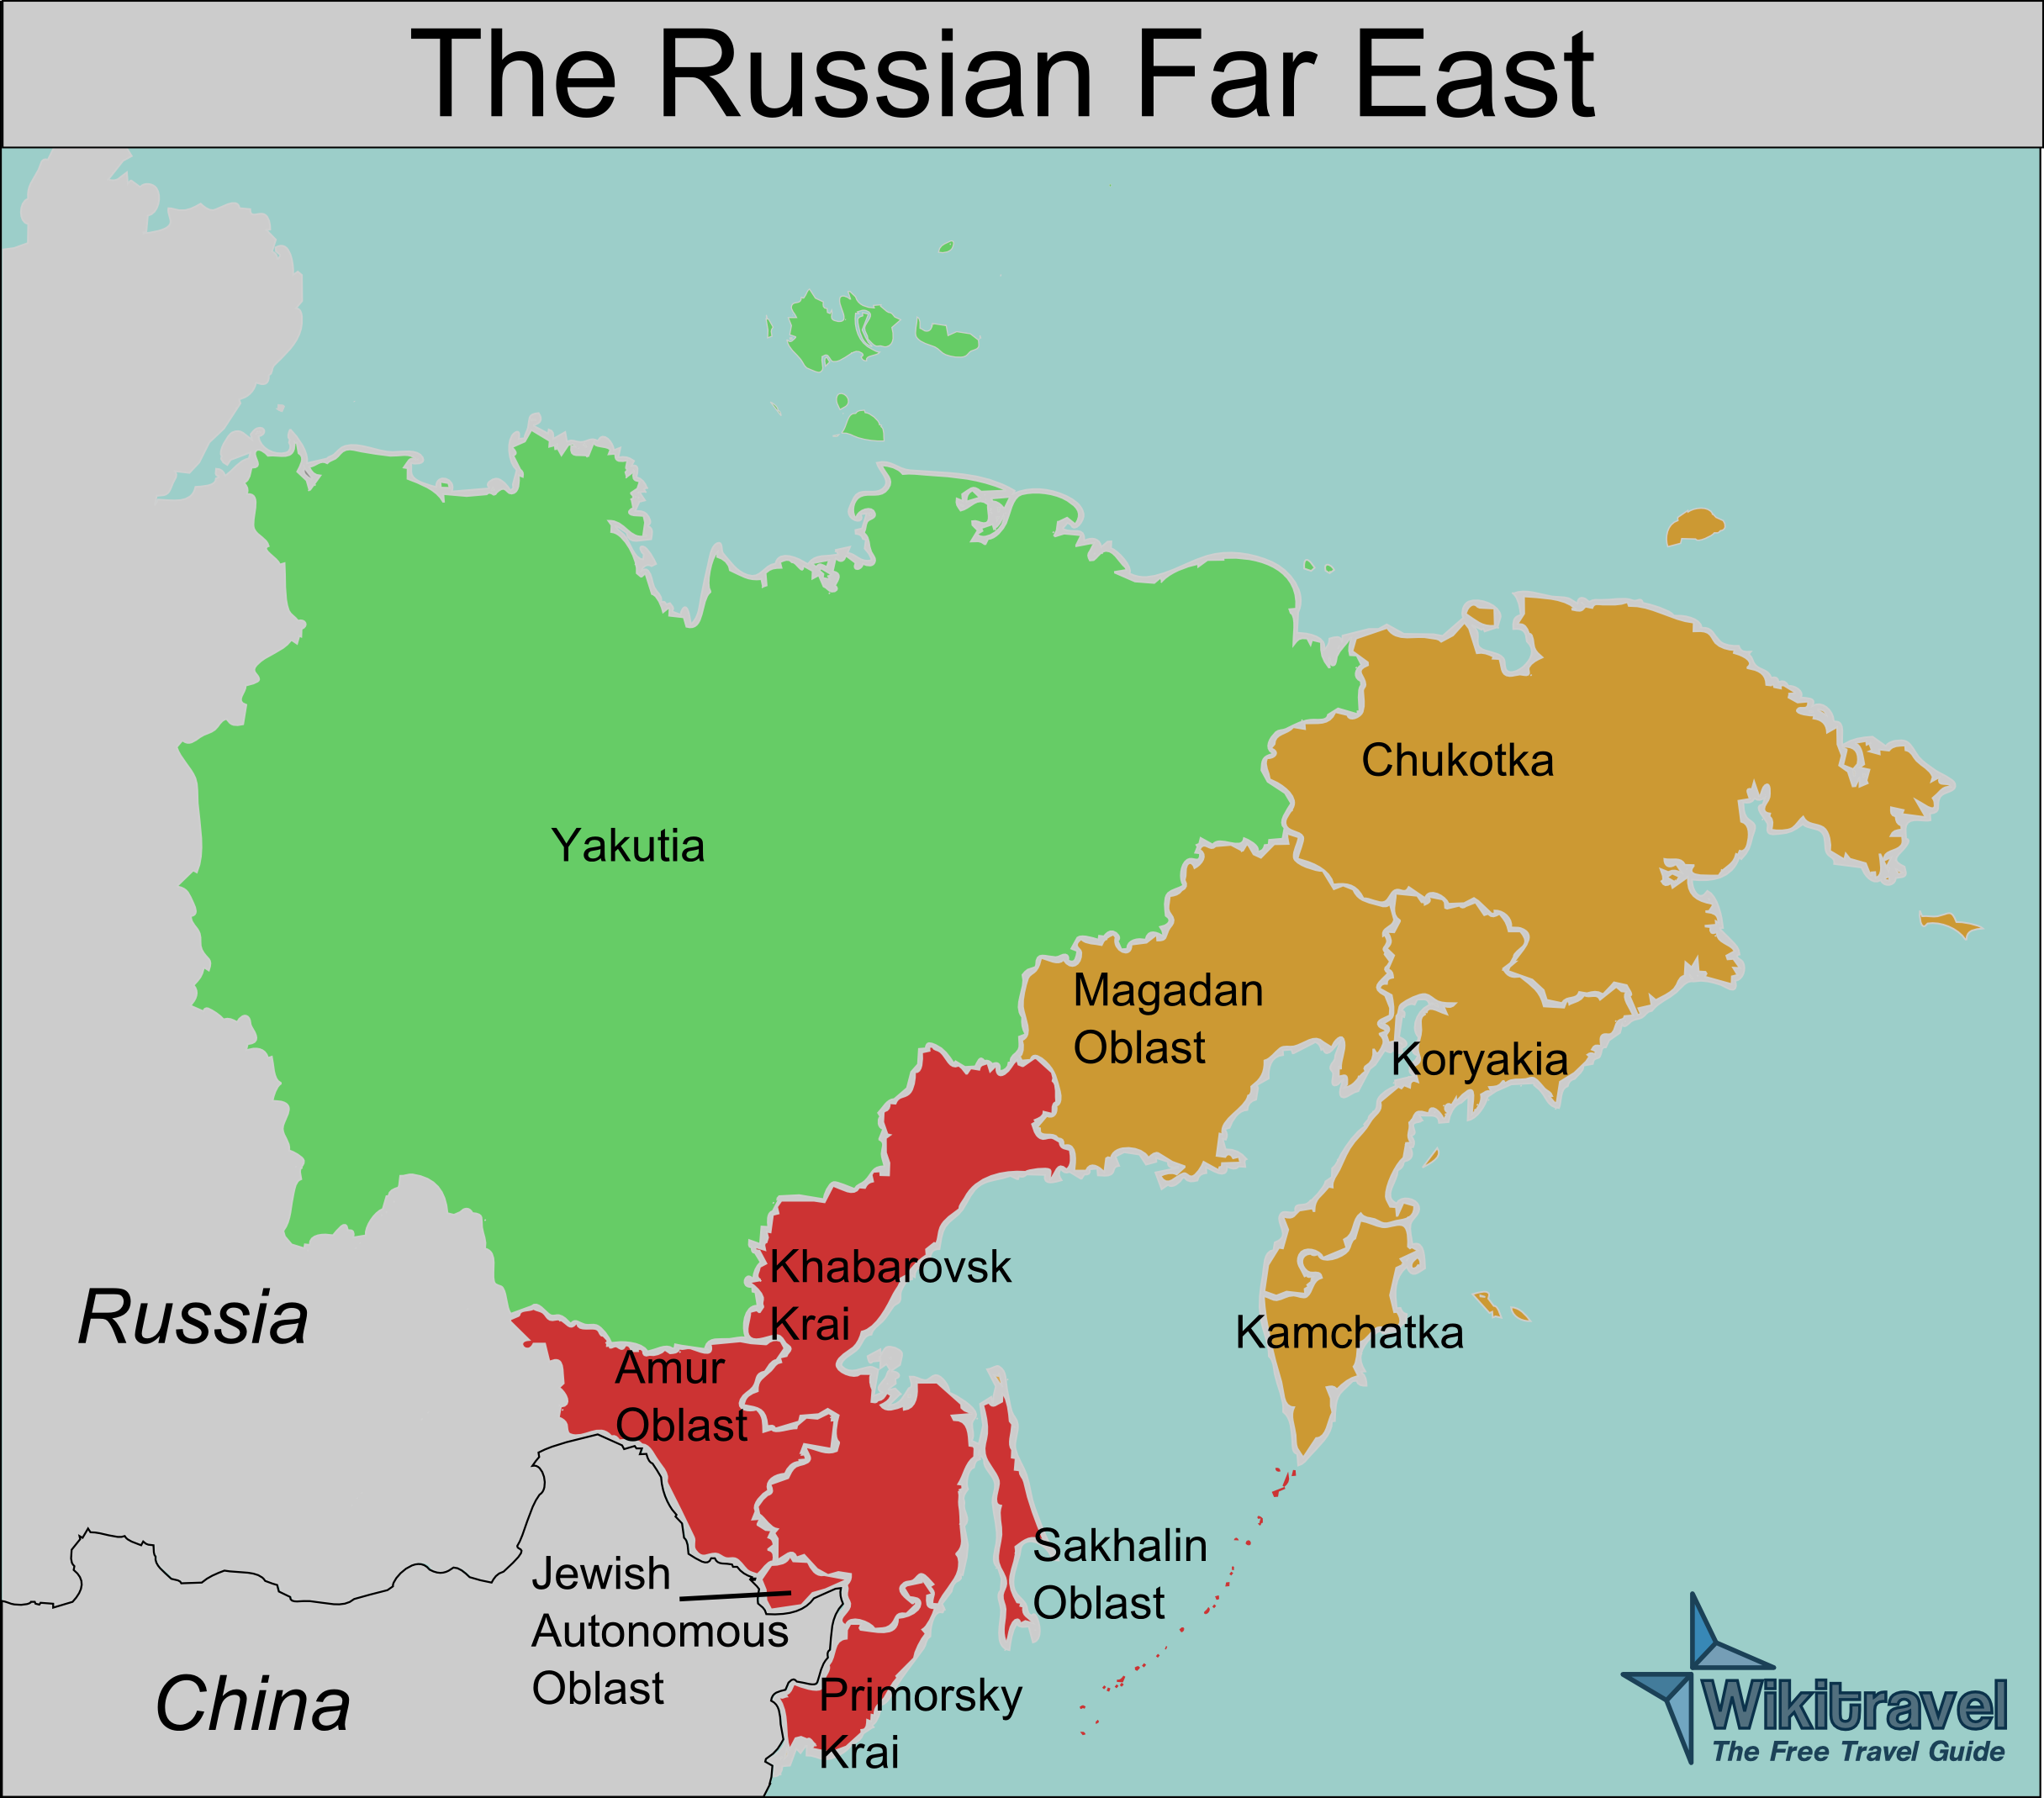 How far had russia progressed from